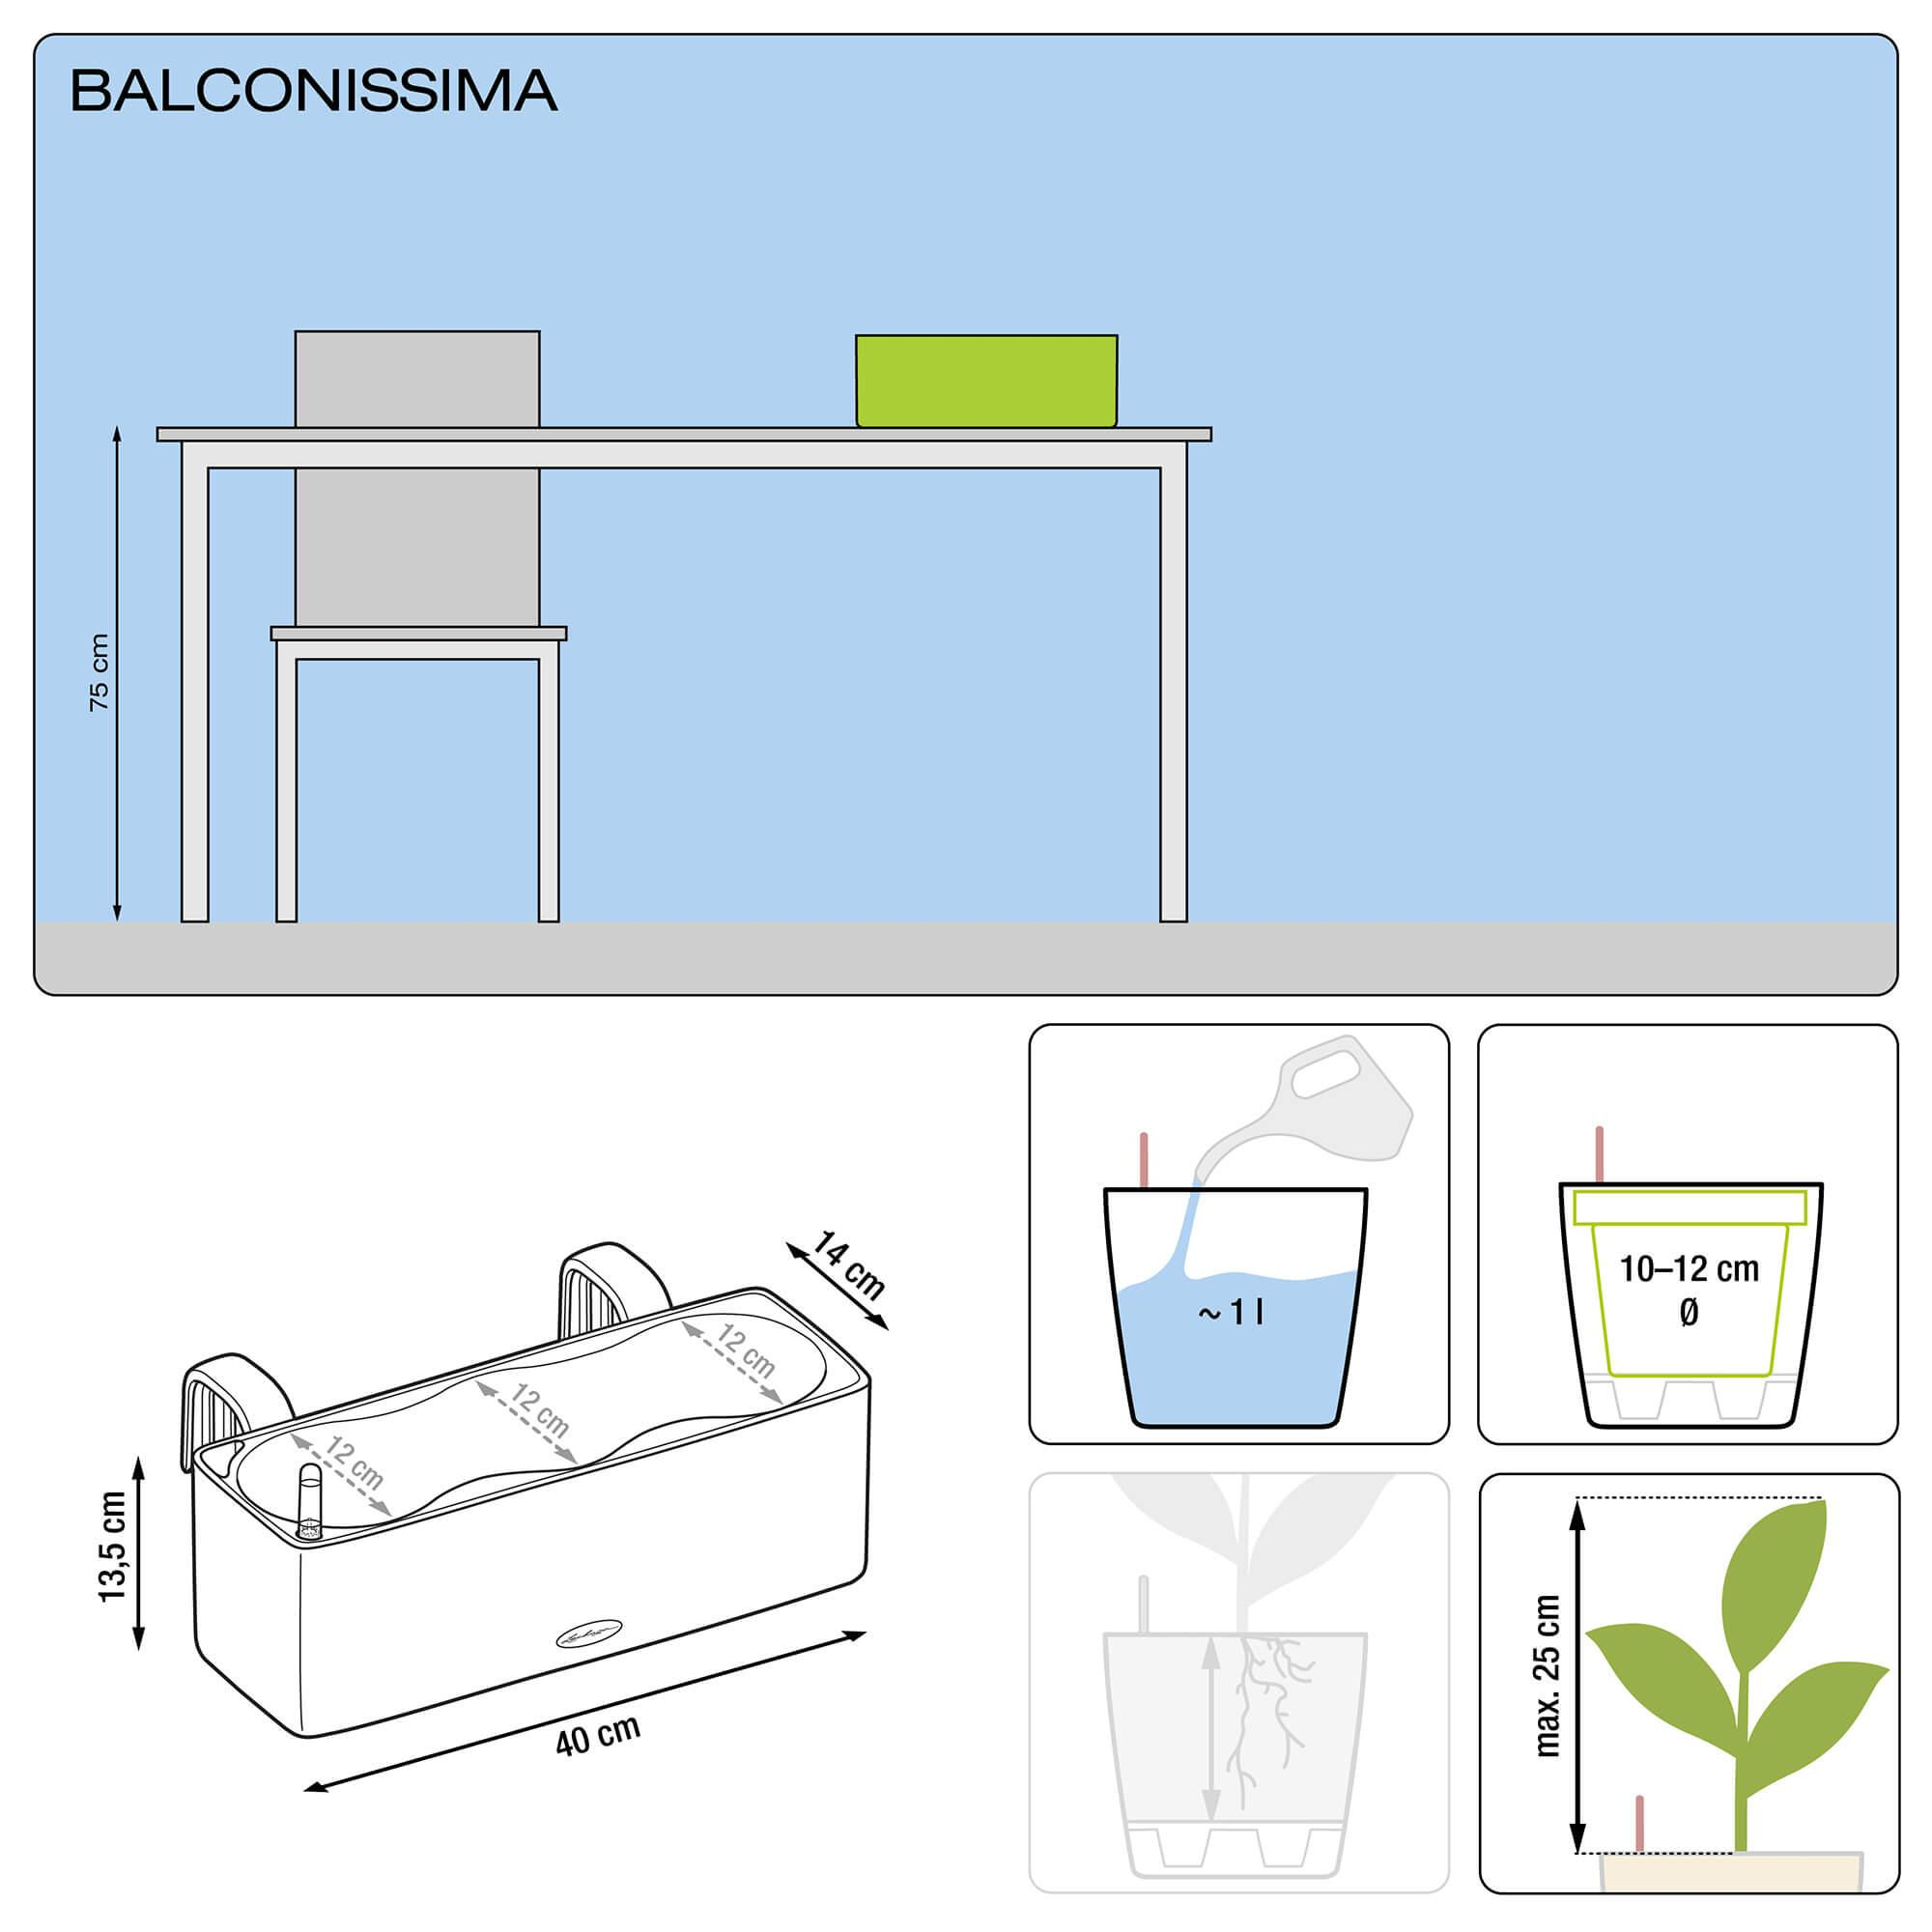 le_balconissima-color_product_addi_nz